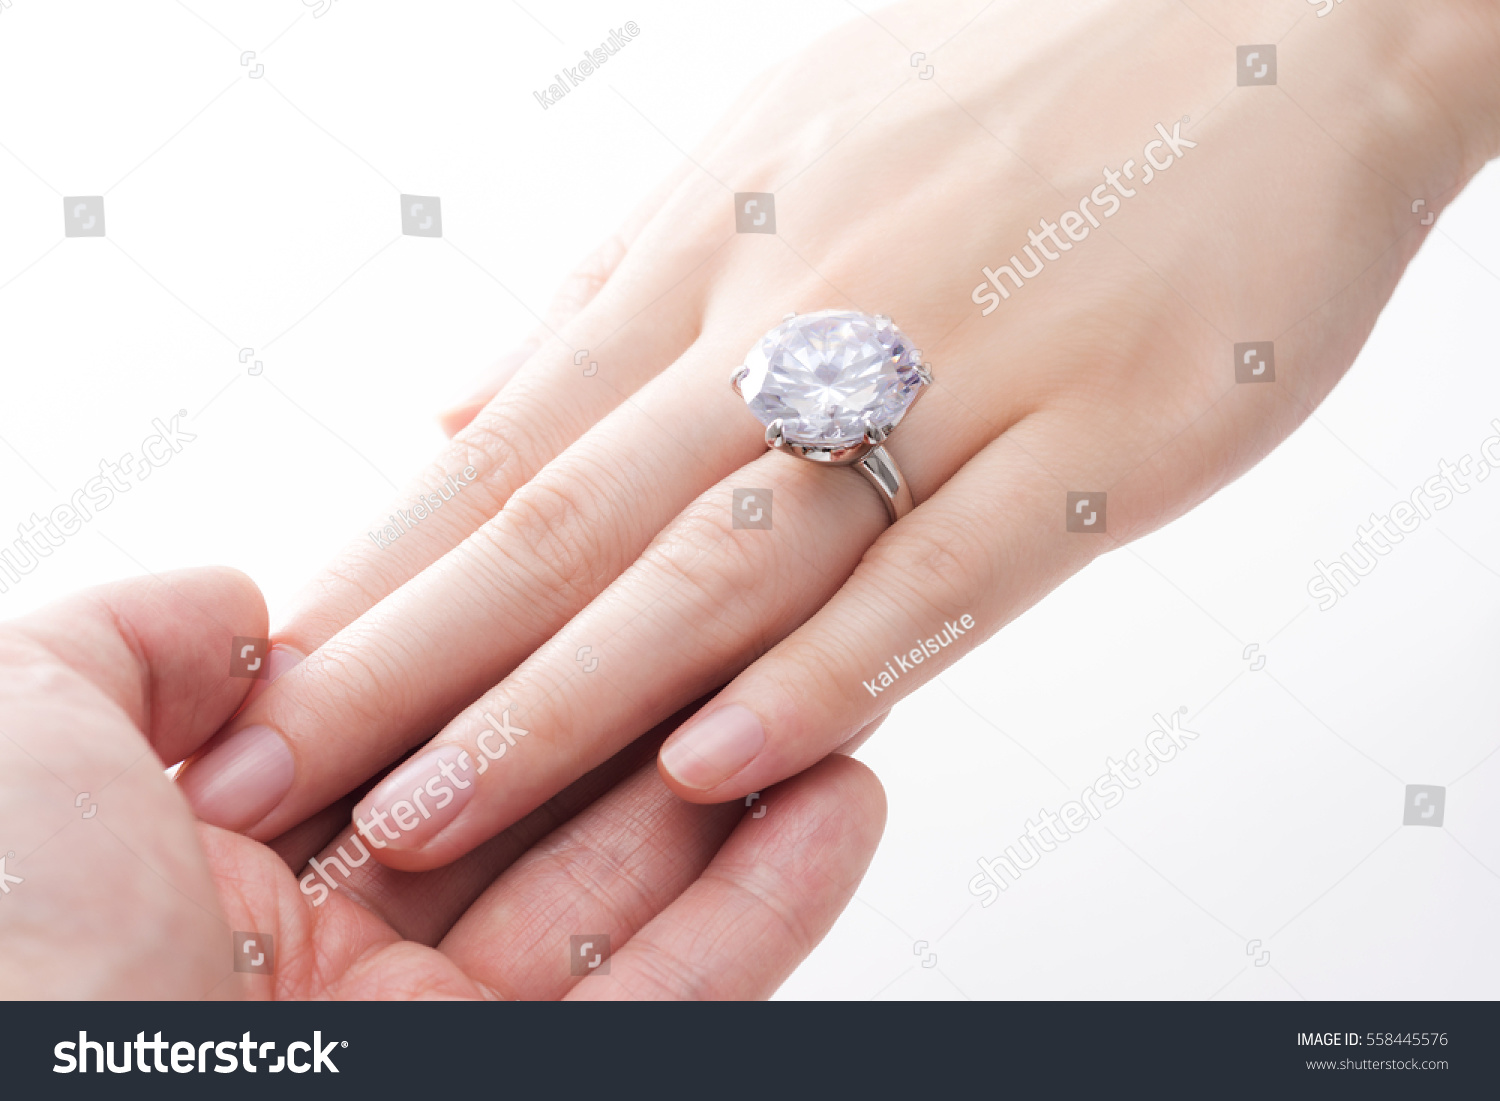 Engagement Ring On Hands Women Stock Photo (Edit Now)- Shutterstock